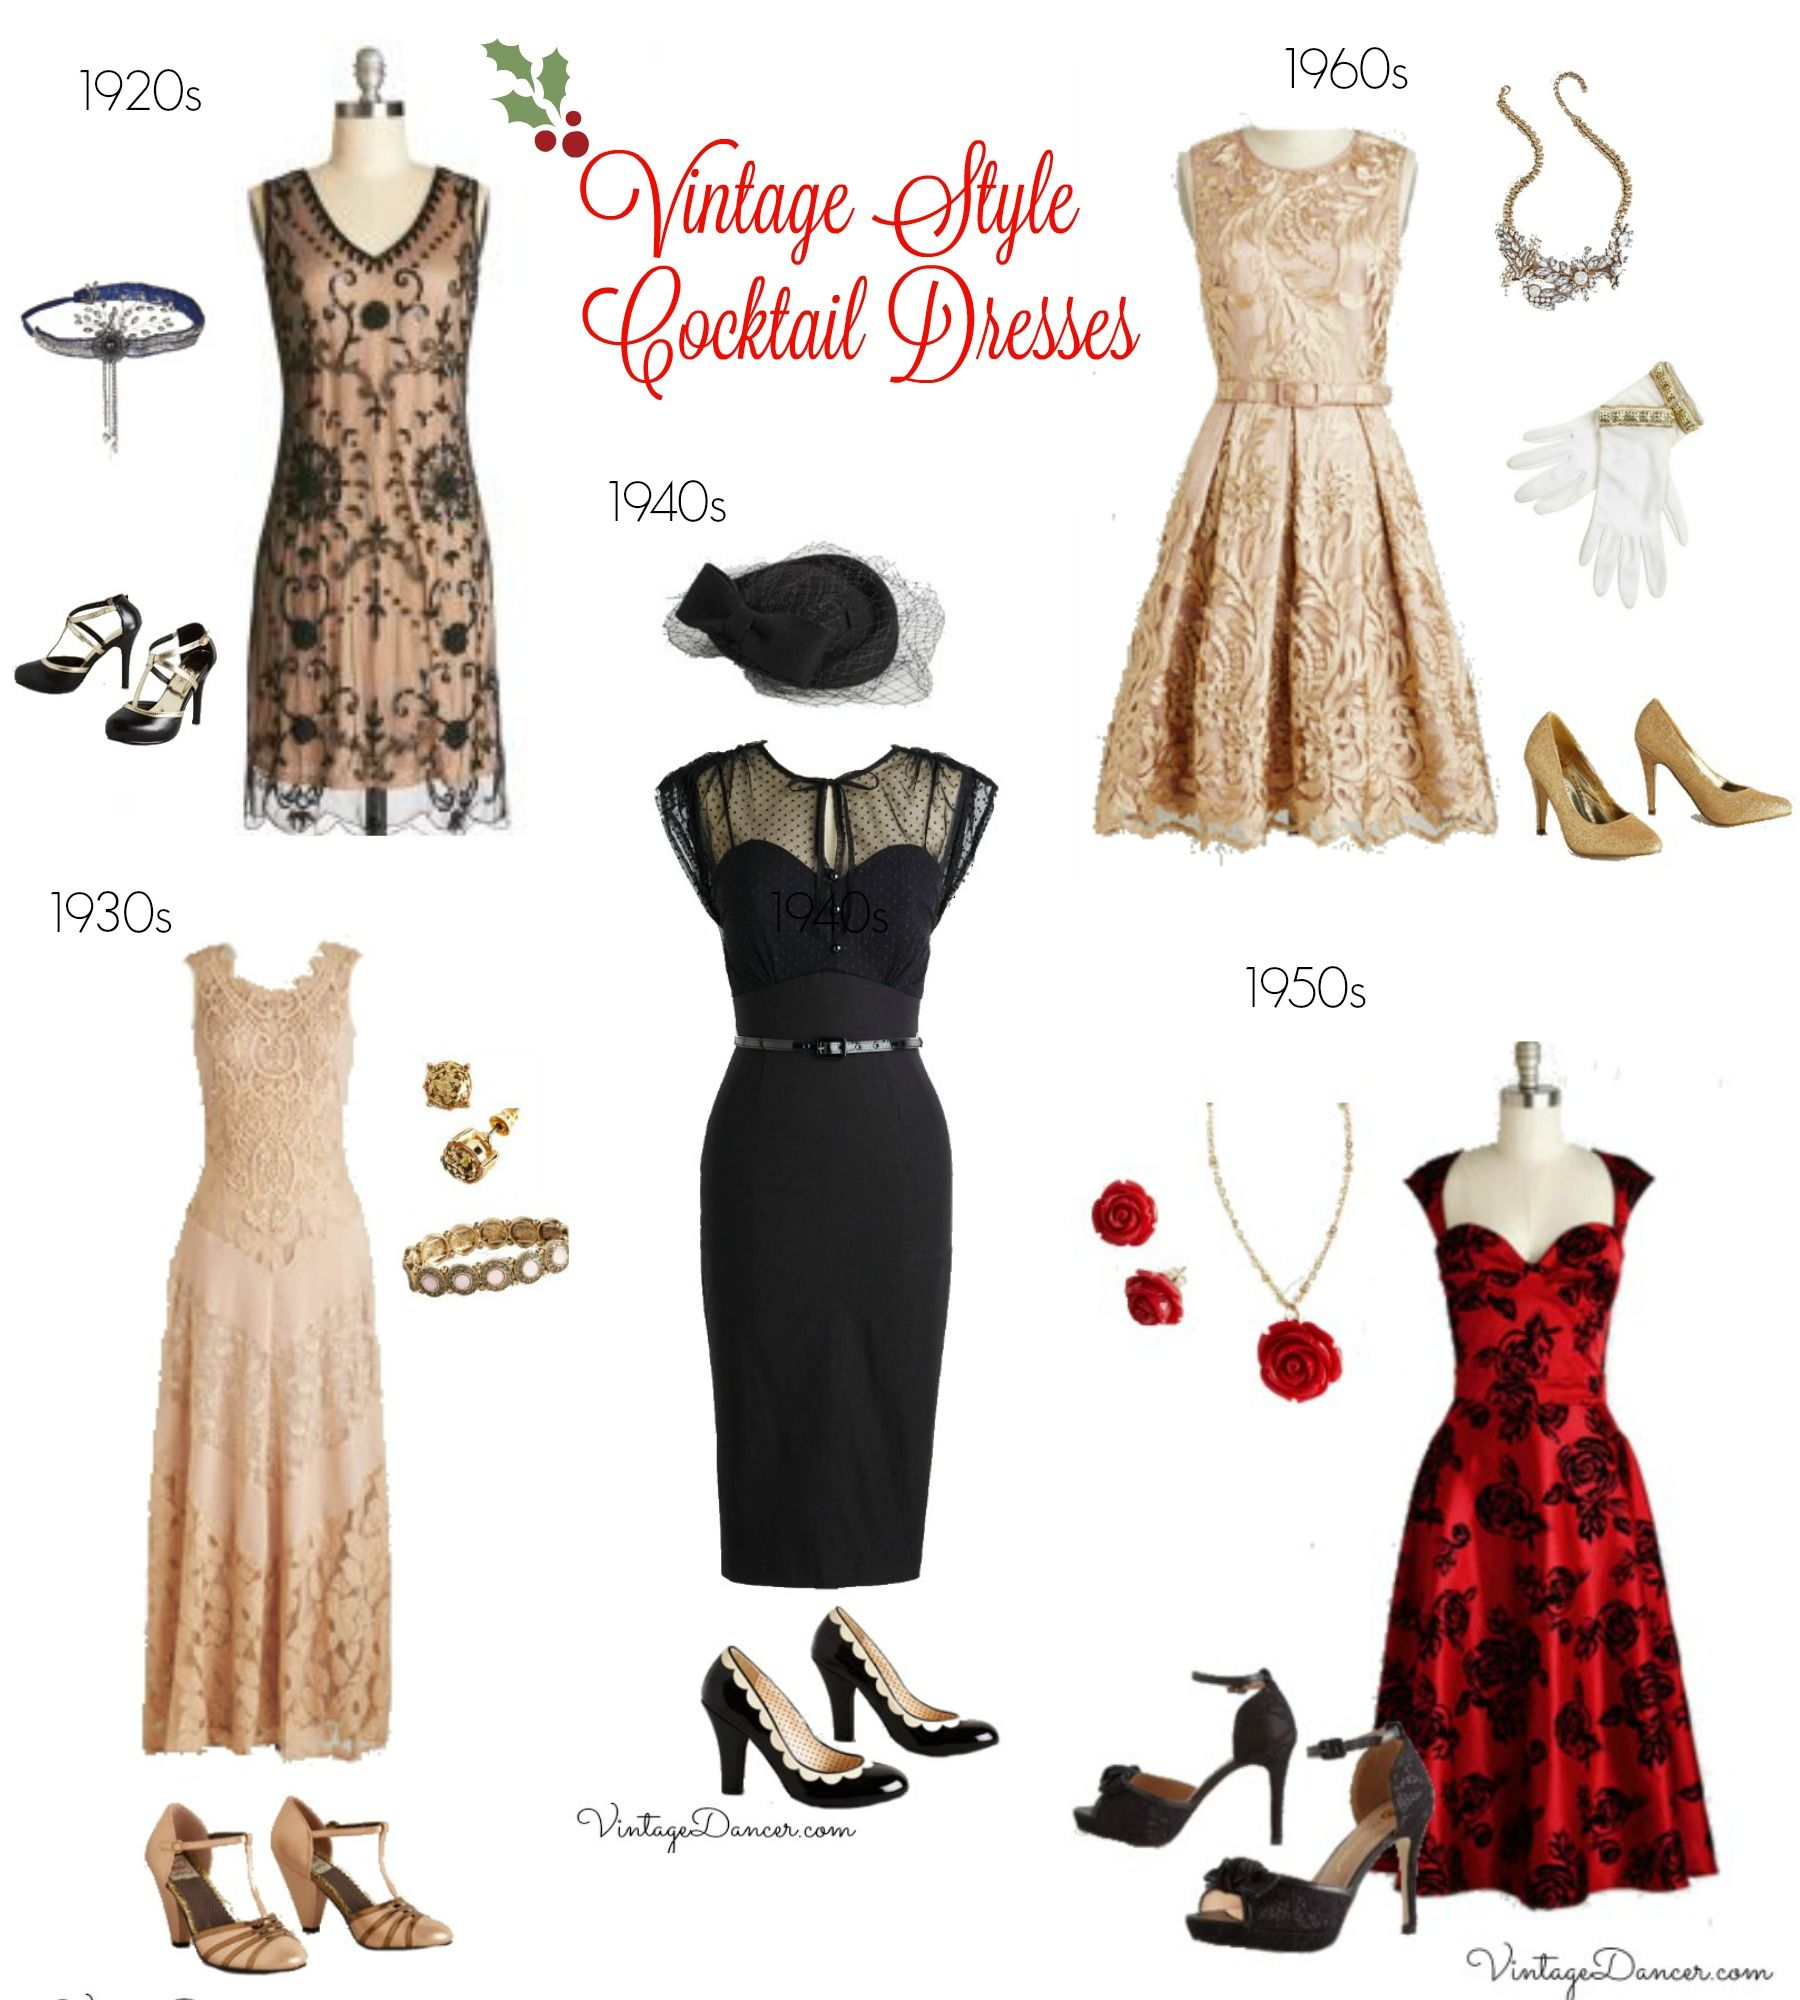 Vintage Style Cocktail Dresses 1920s 1930s 1940s 1950s 1960s Which Decade Is Your Style Find These At Vintagedancer Com Looks Vestidos Moda [ 2000 x 1800 Pixel ]